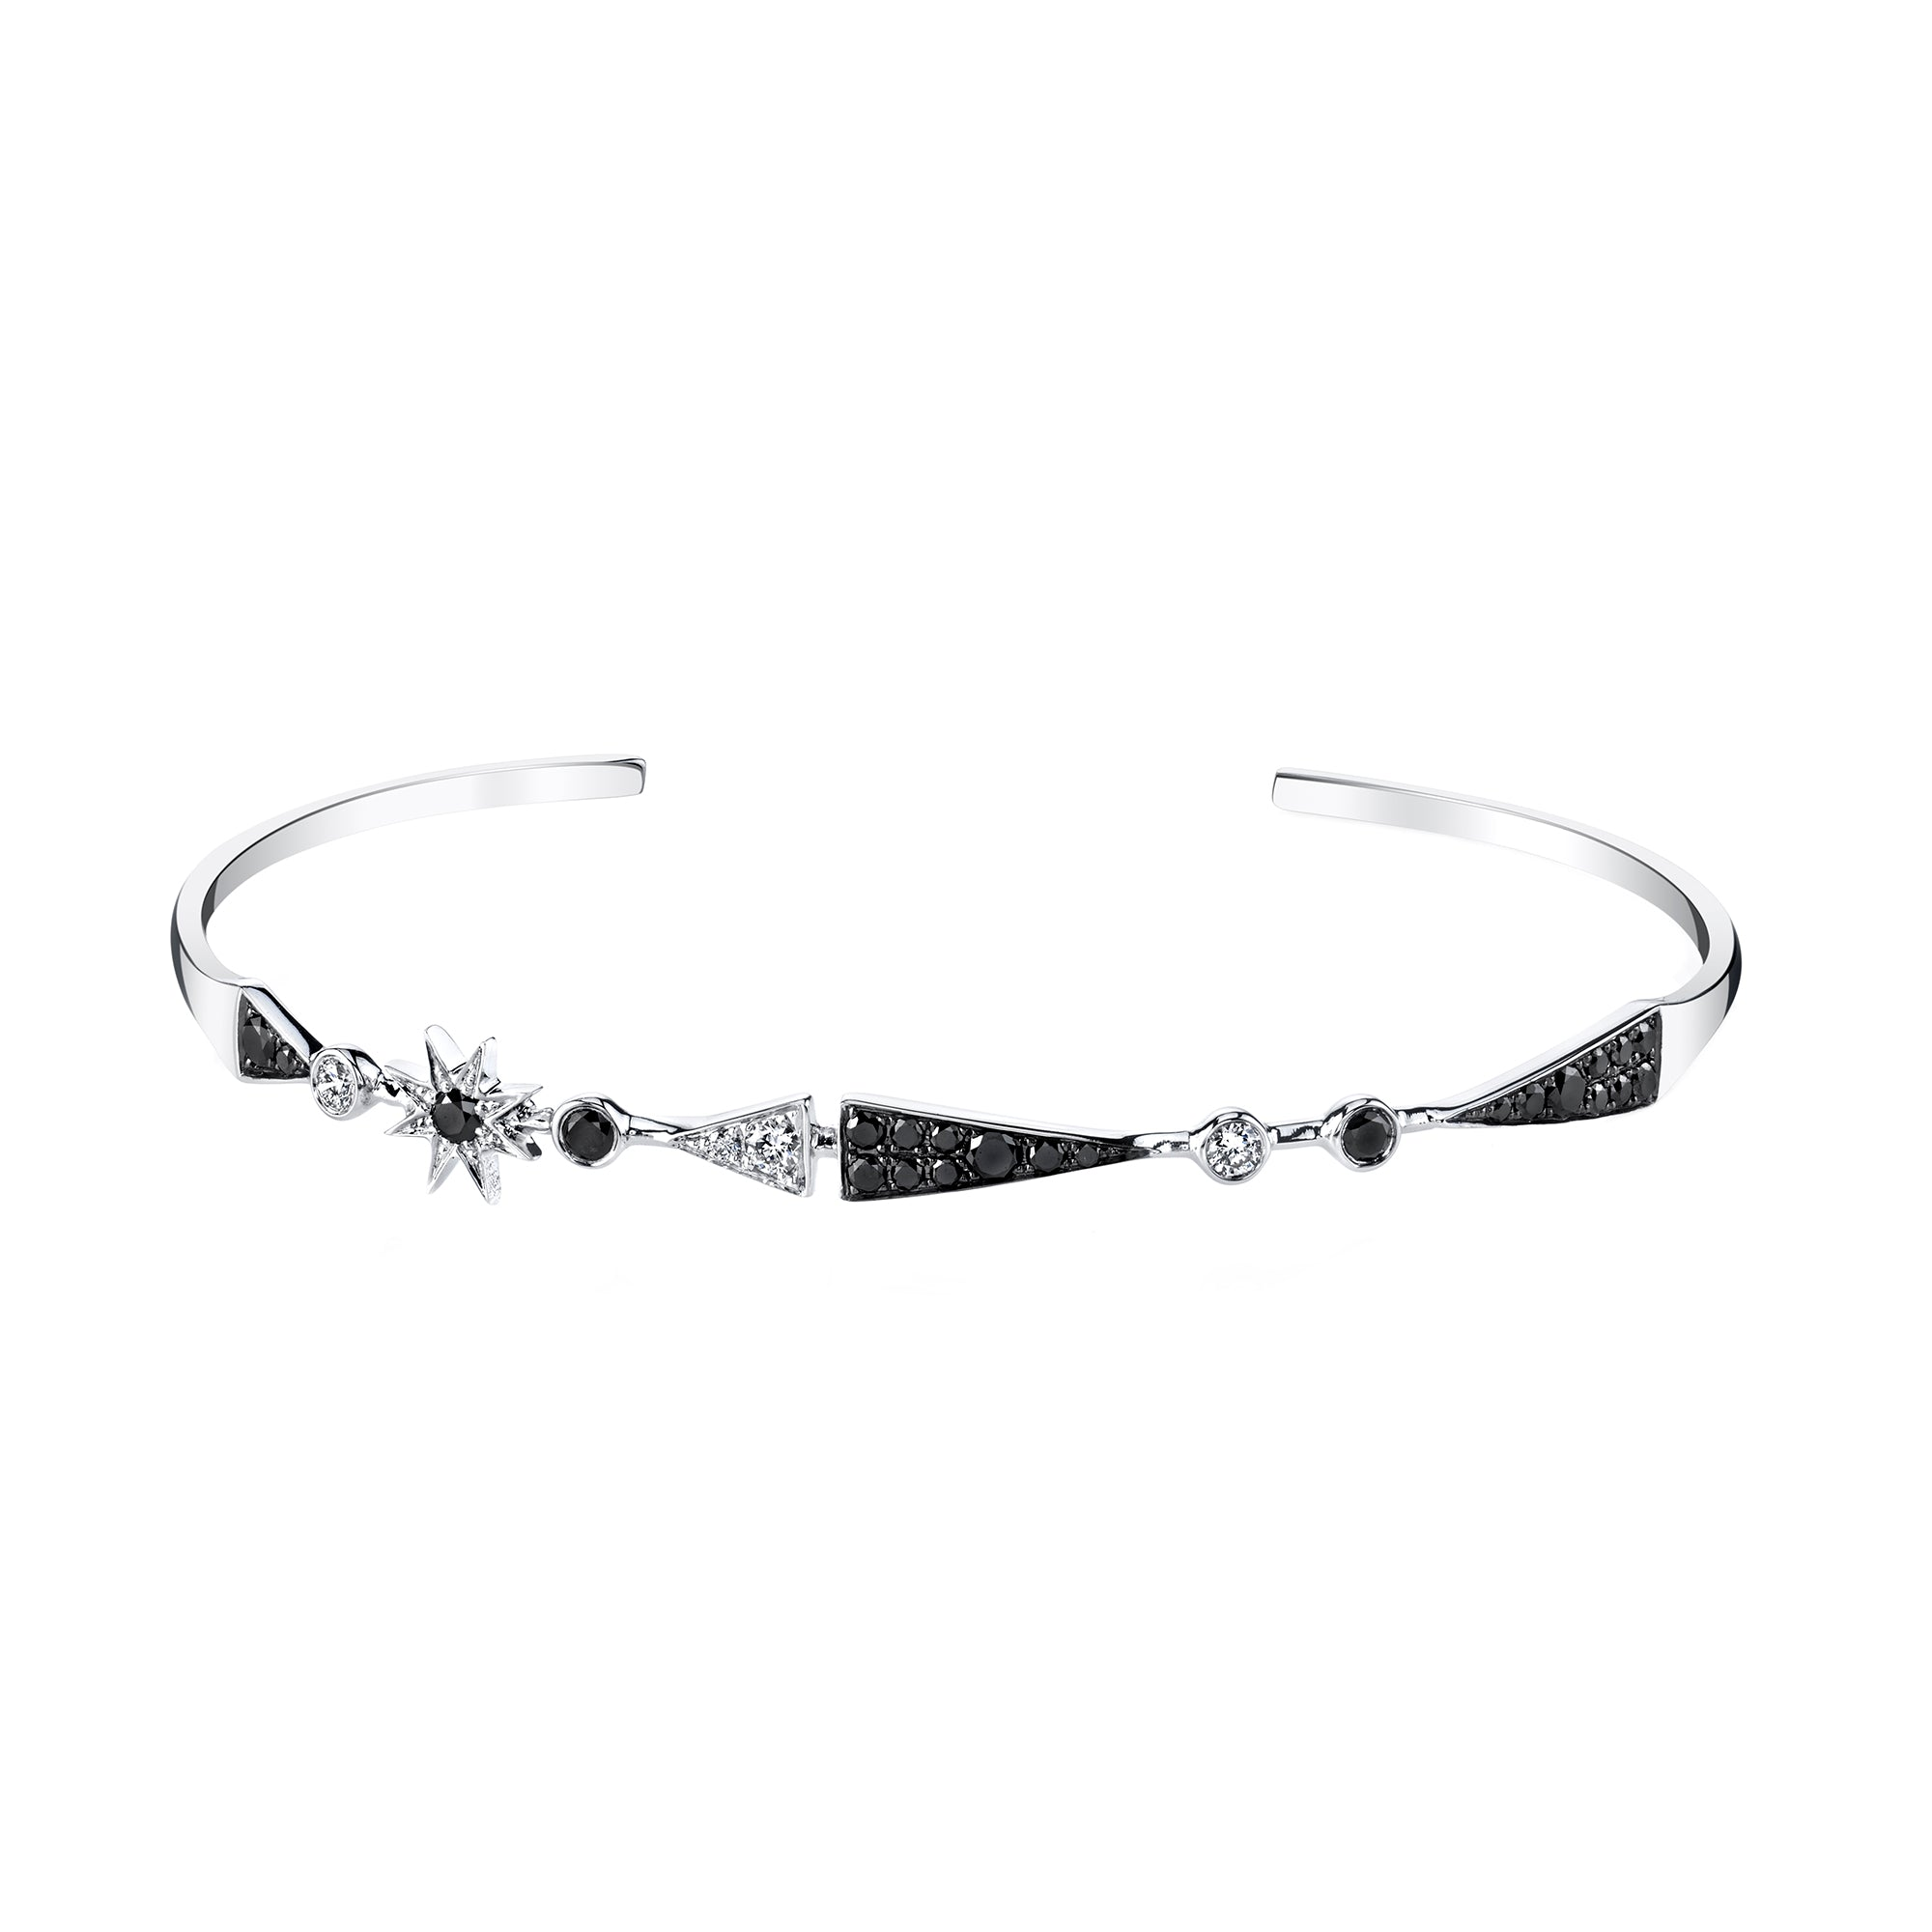 Star Cuff Bracelet by Colette for Broken English Jewelry